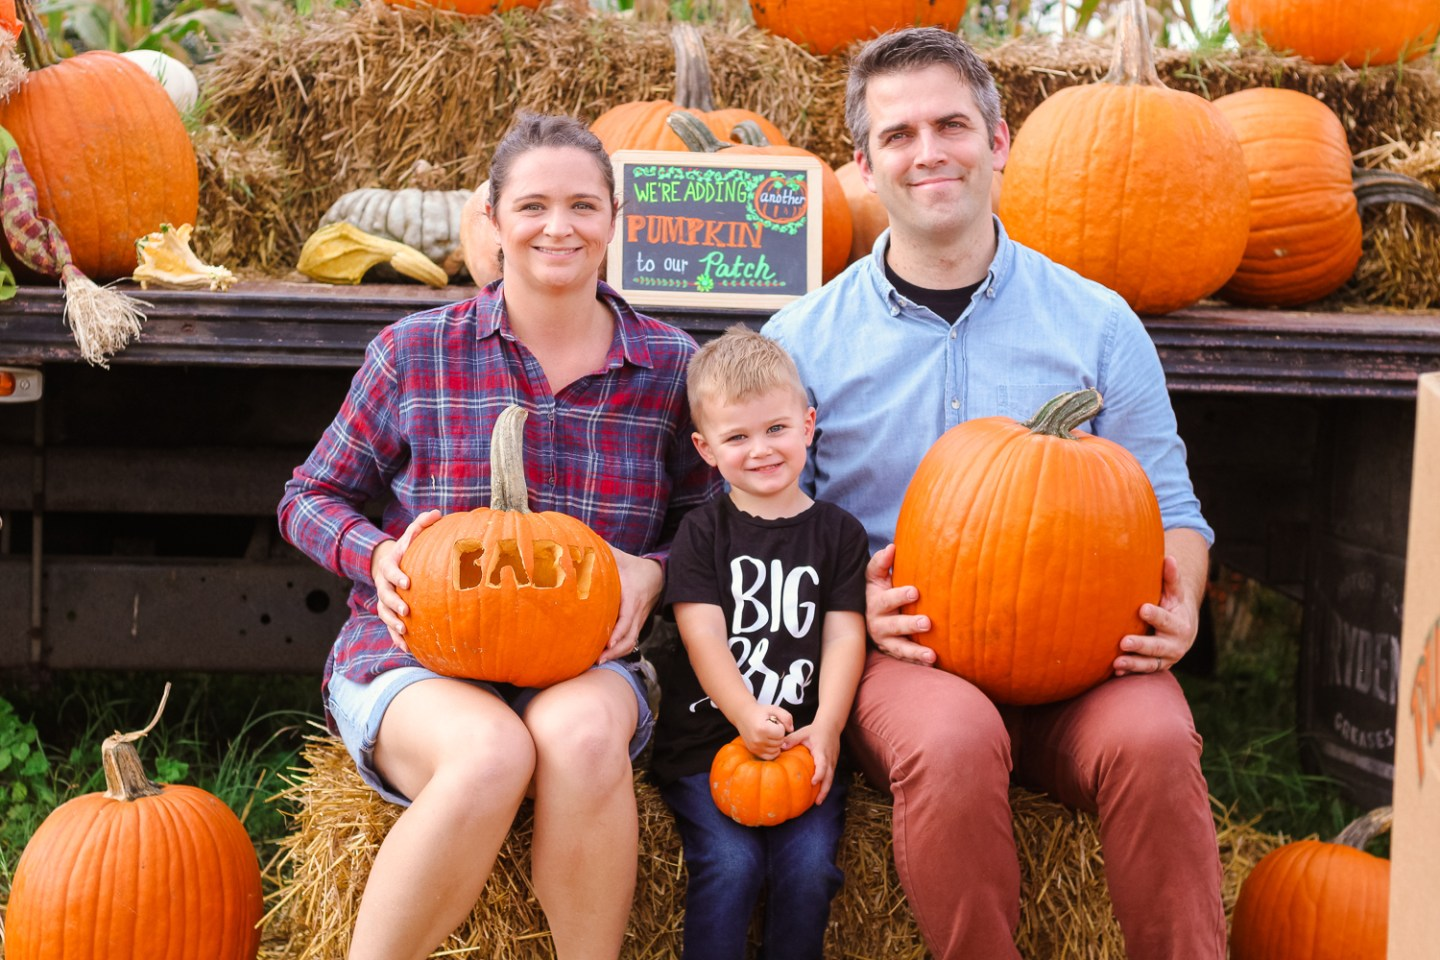 Exciting Update & a Boo-tiful Halloween Pregnancy Announcement!